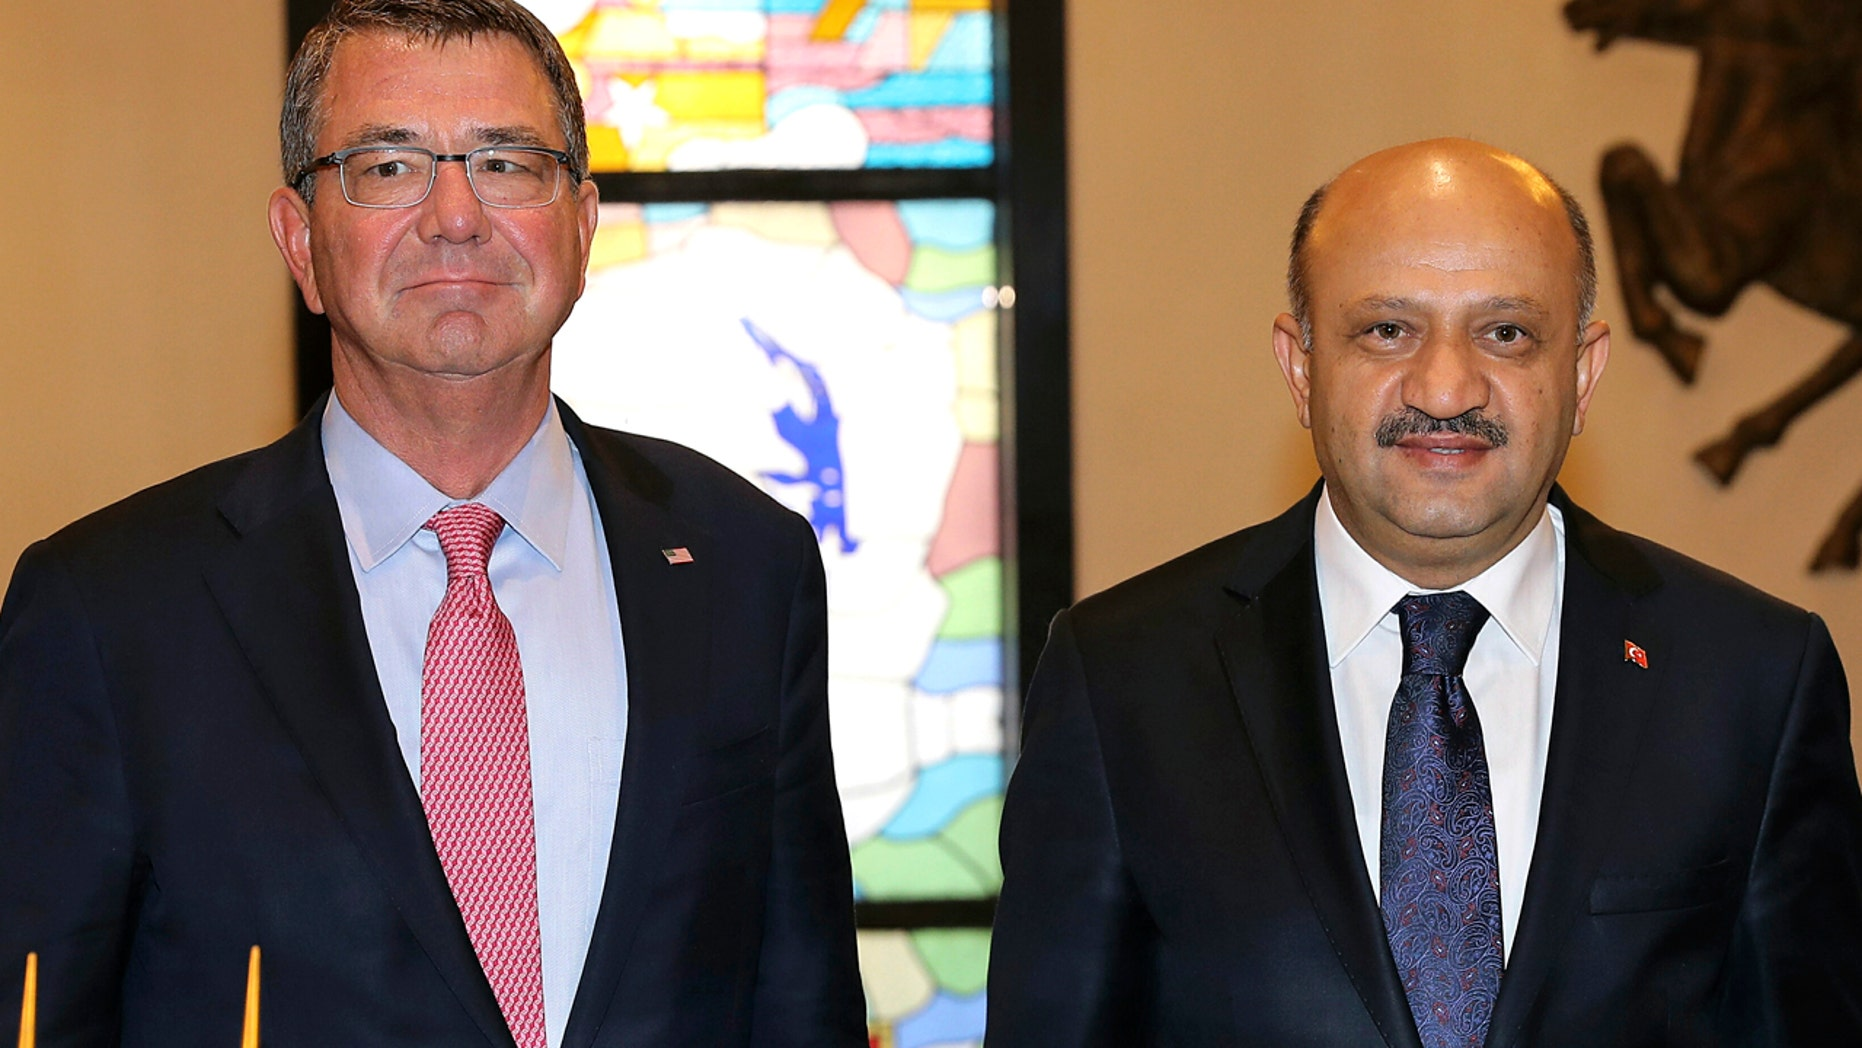 Oct. 21, 2016: U.S Secretary of Defense Ash Carter, left, and his Turkish counterpart Fikri Isik pose for a photo before a meeting at the Defense Ministry in Ankara